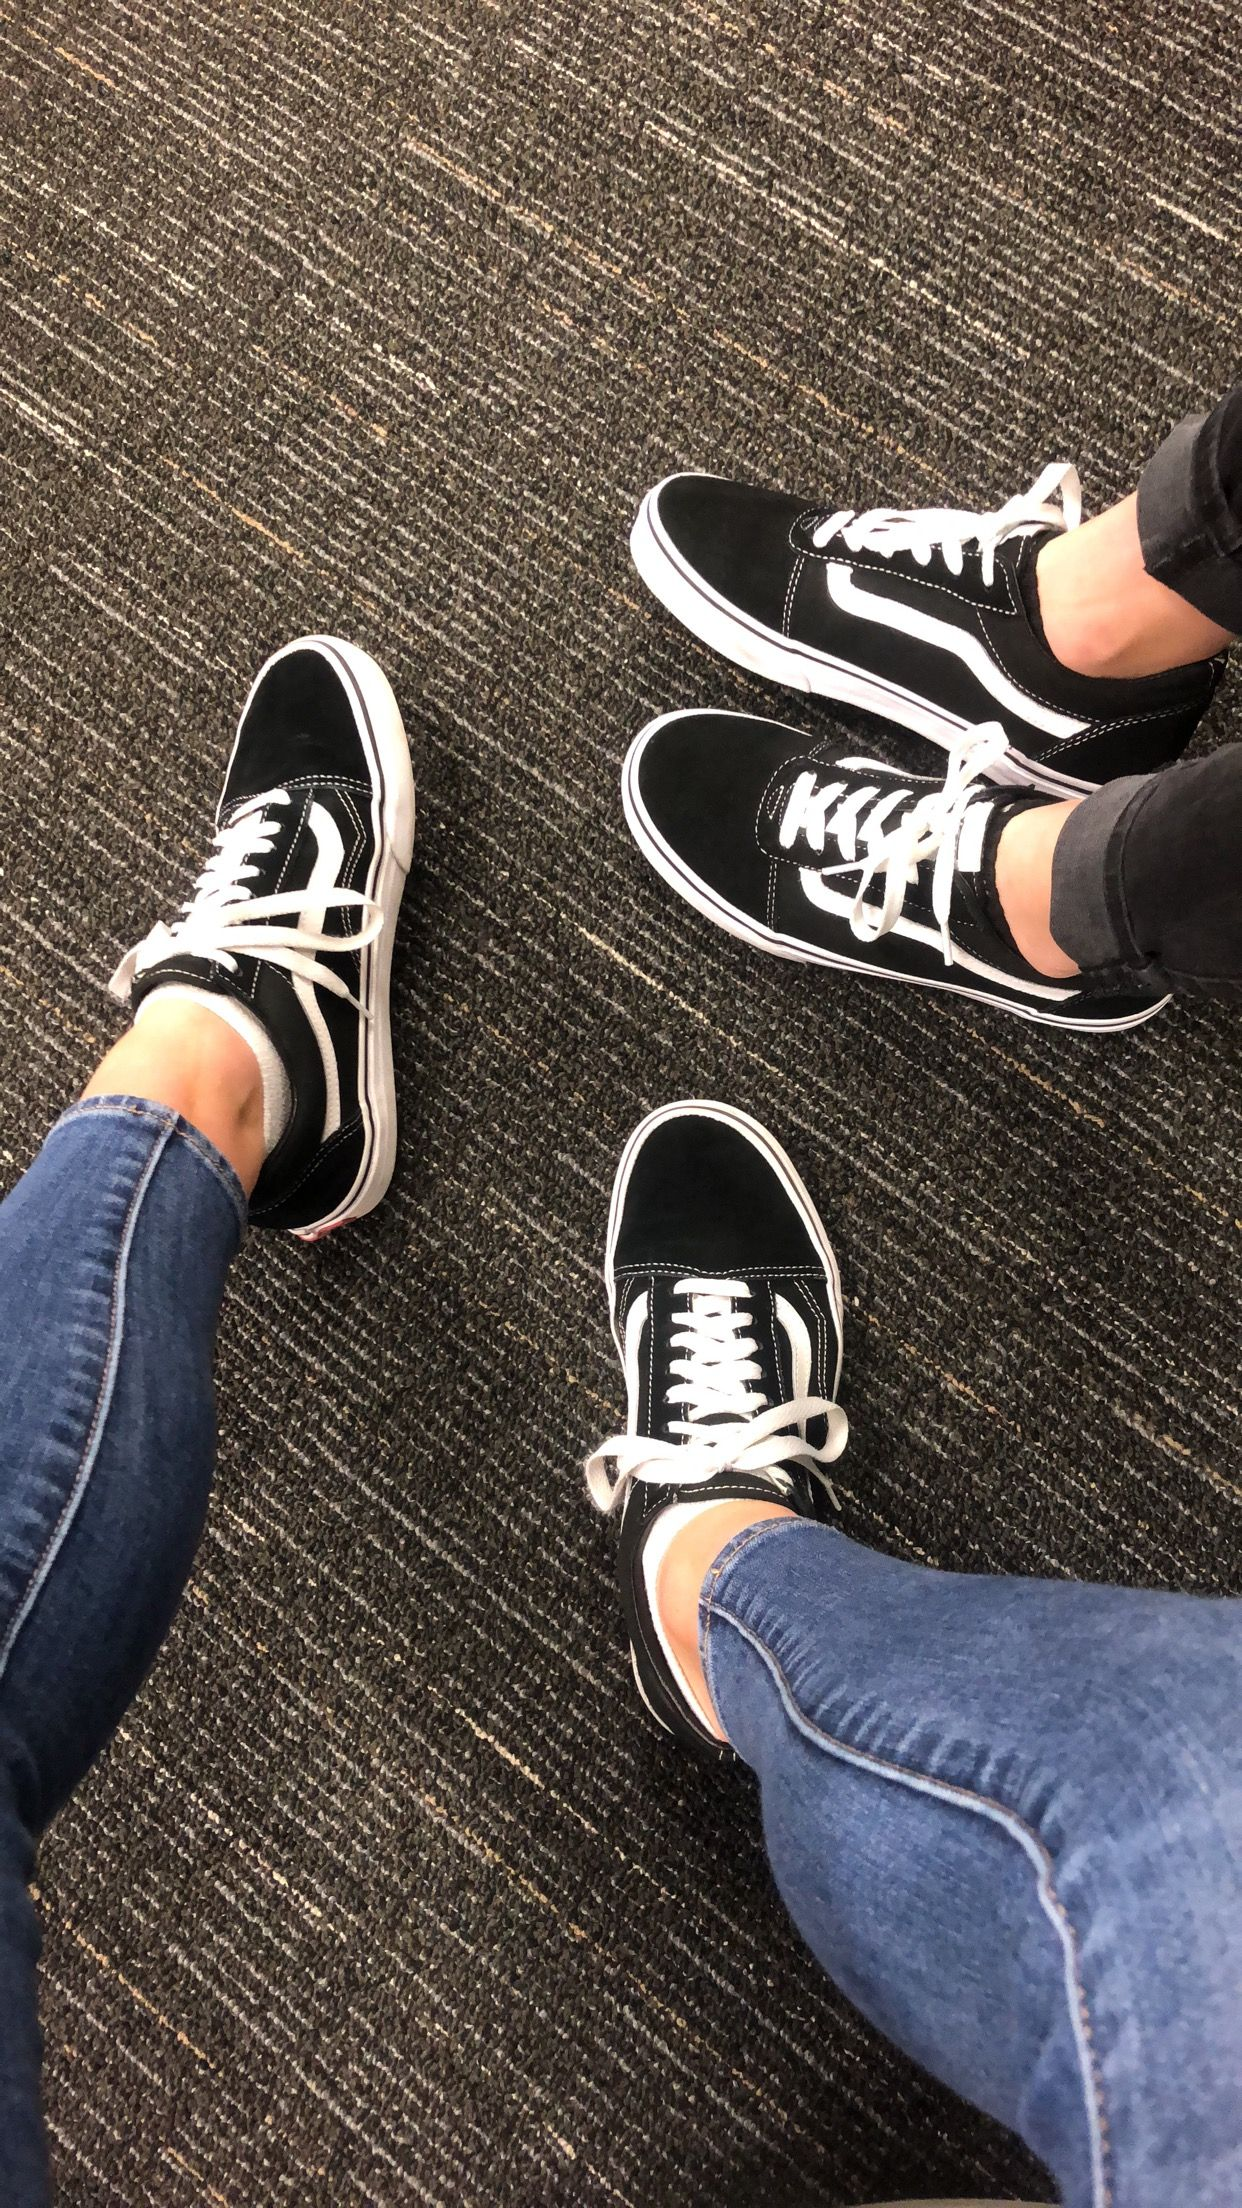 Pin by Samire on Shoes!! in 2019 | Vans shoes, Vans old